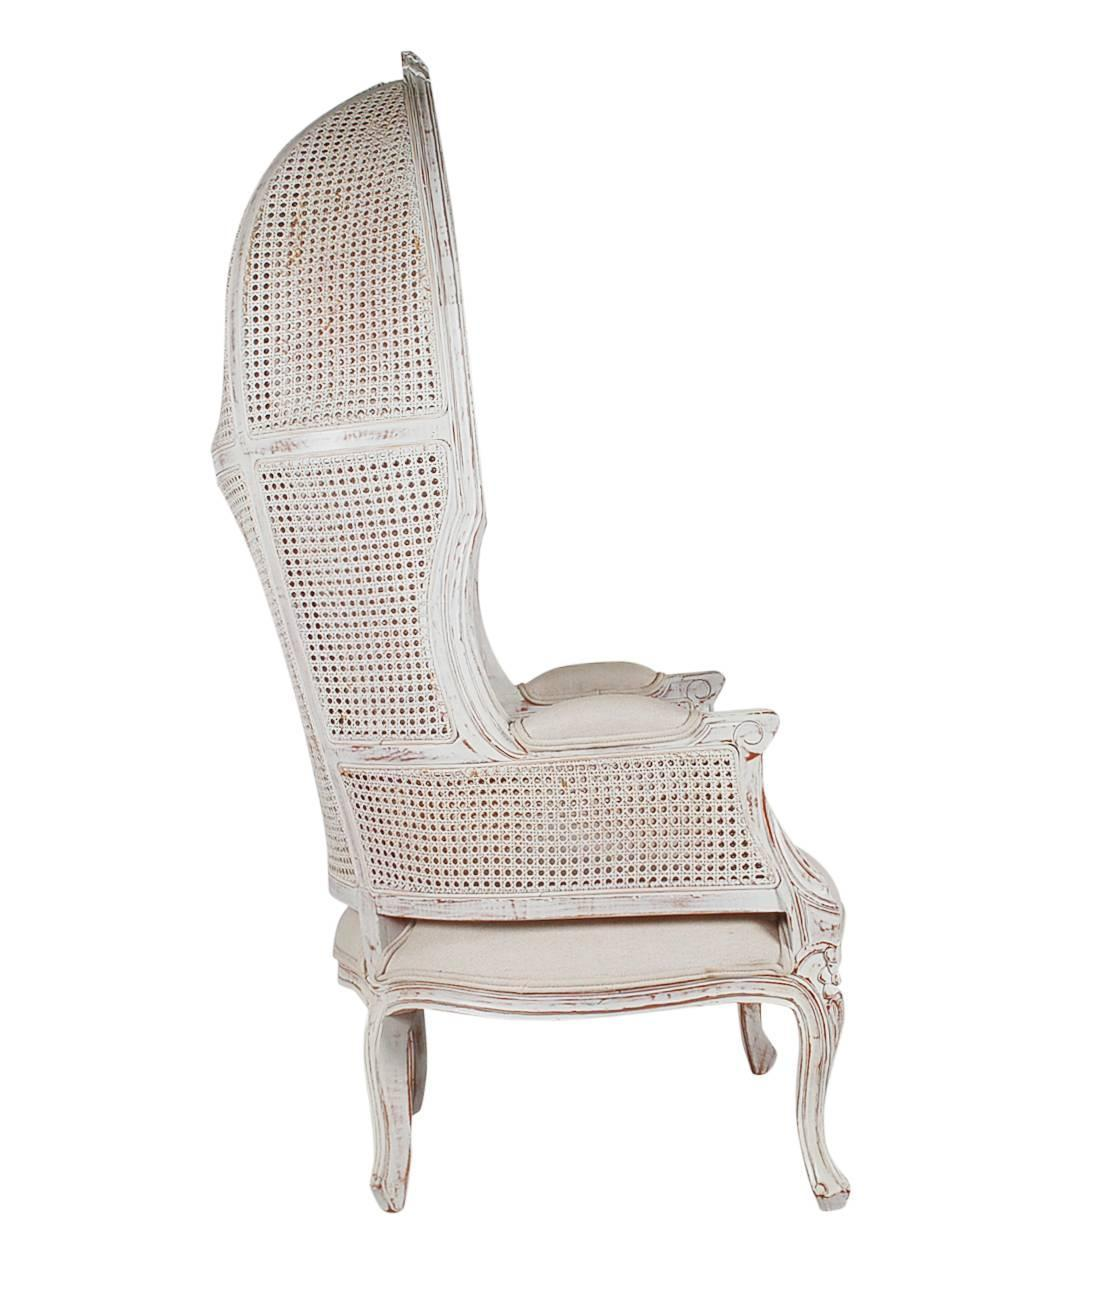 french style cane wingback canopy porters chair for sale at 1stdibs. Black Bedroom Furniture Sets. Home Design Ideas